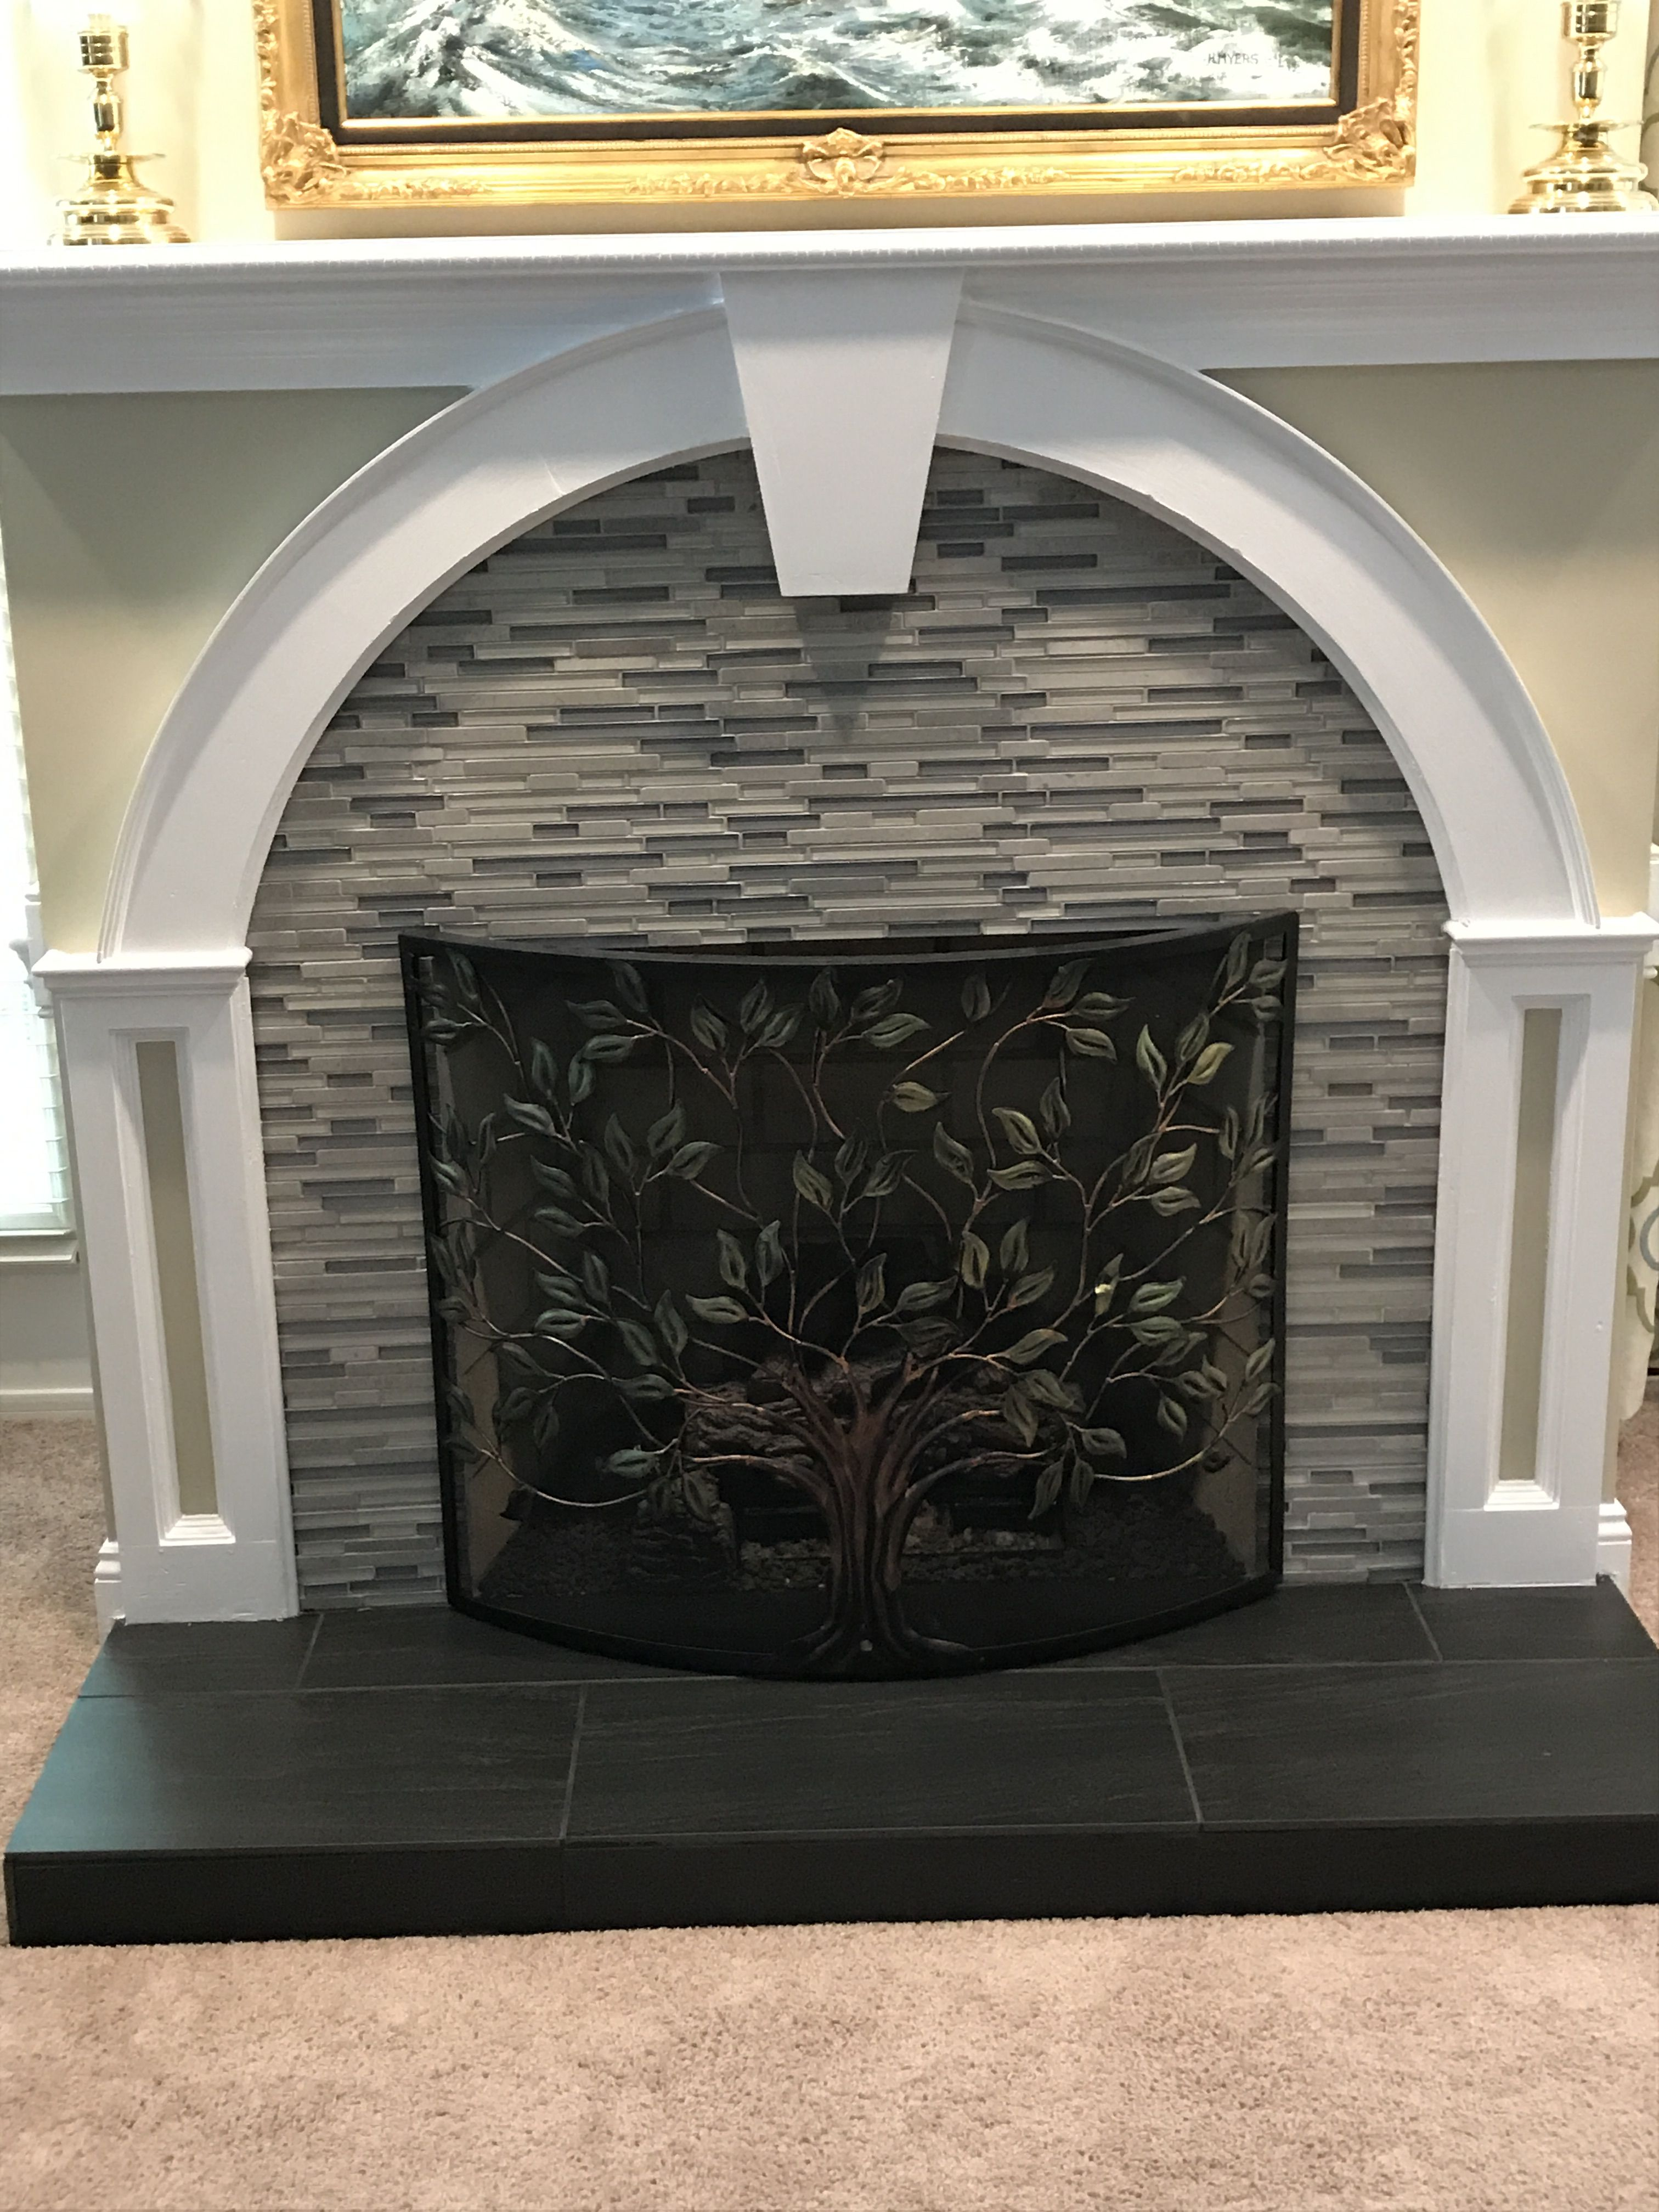 Granite Slab for Fireplace Hearth Awesome after Using Arlington Stria Glass and Stone Wall Tile for